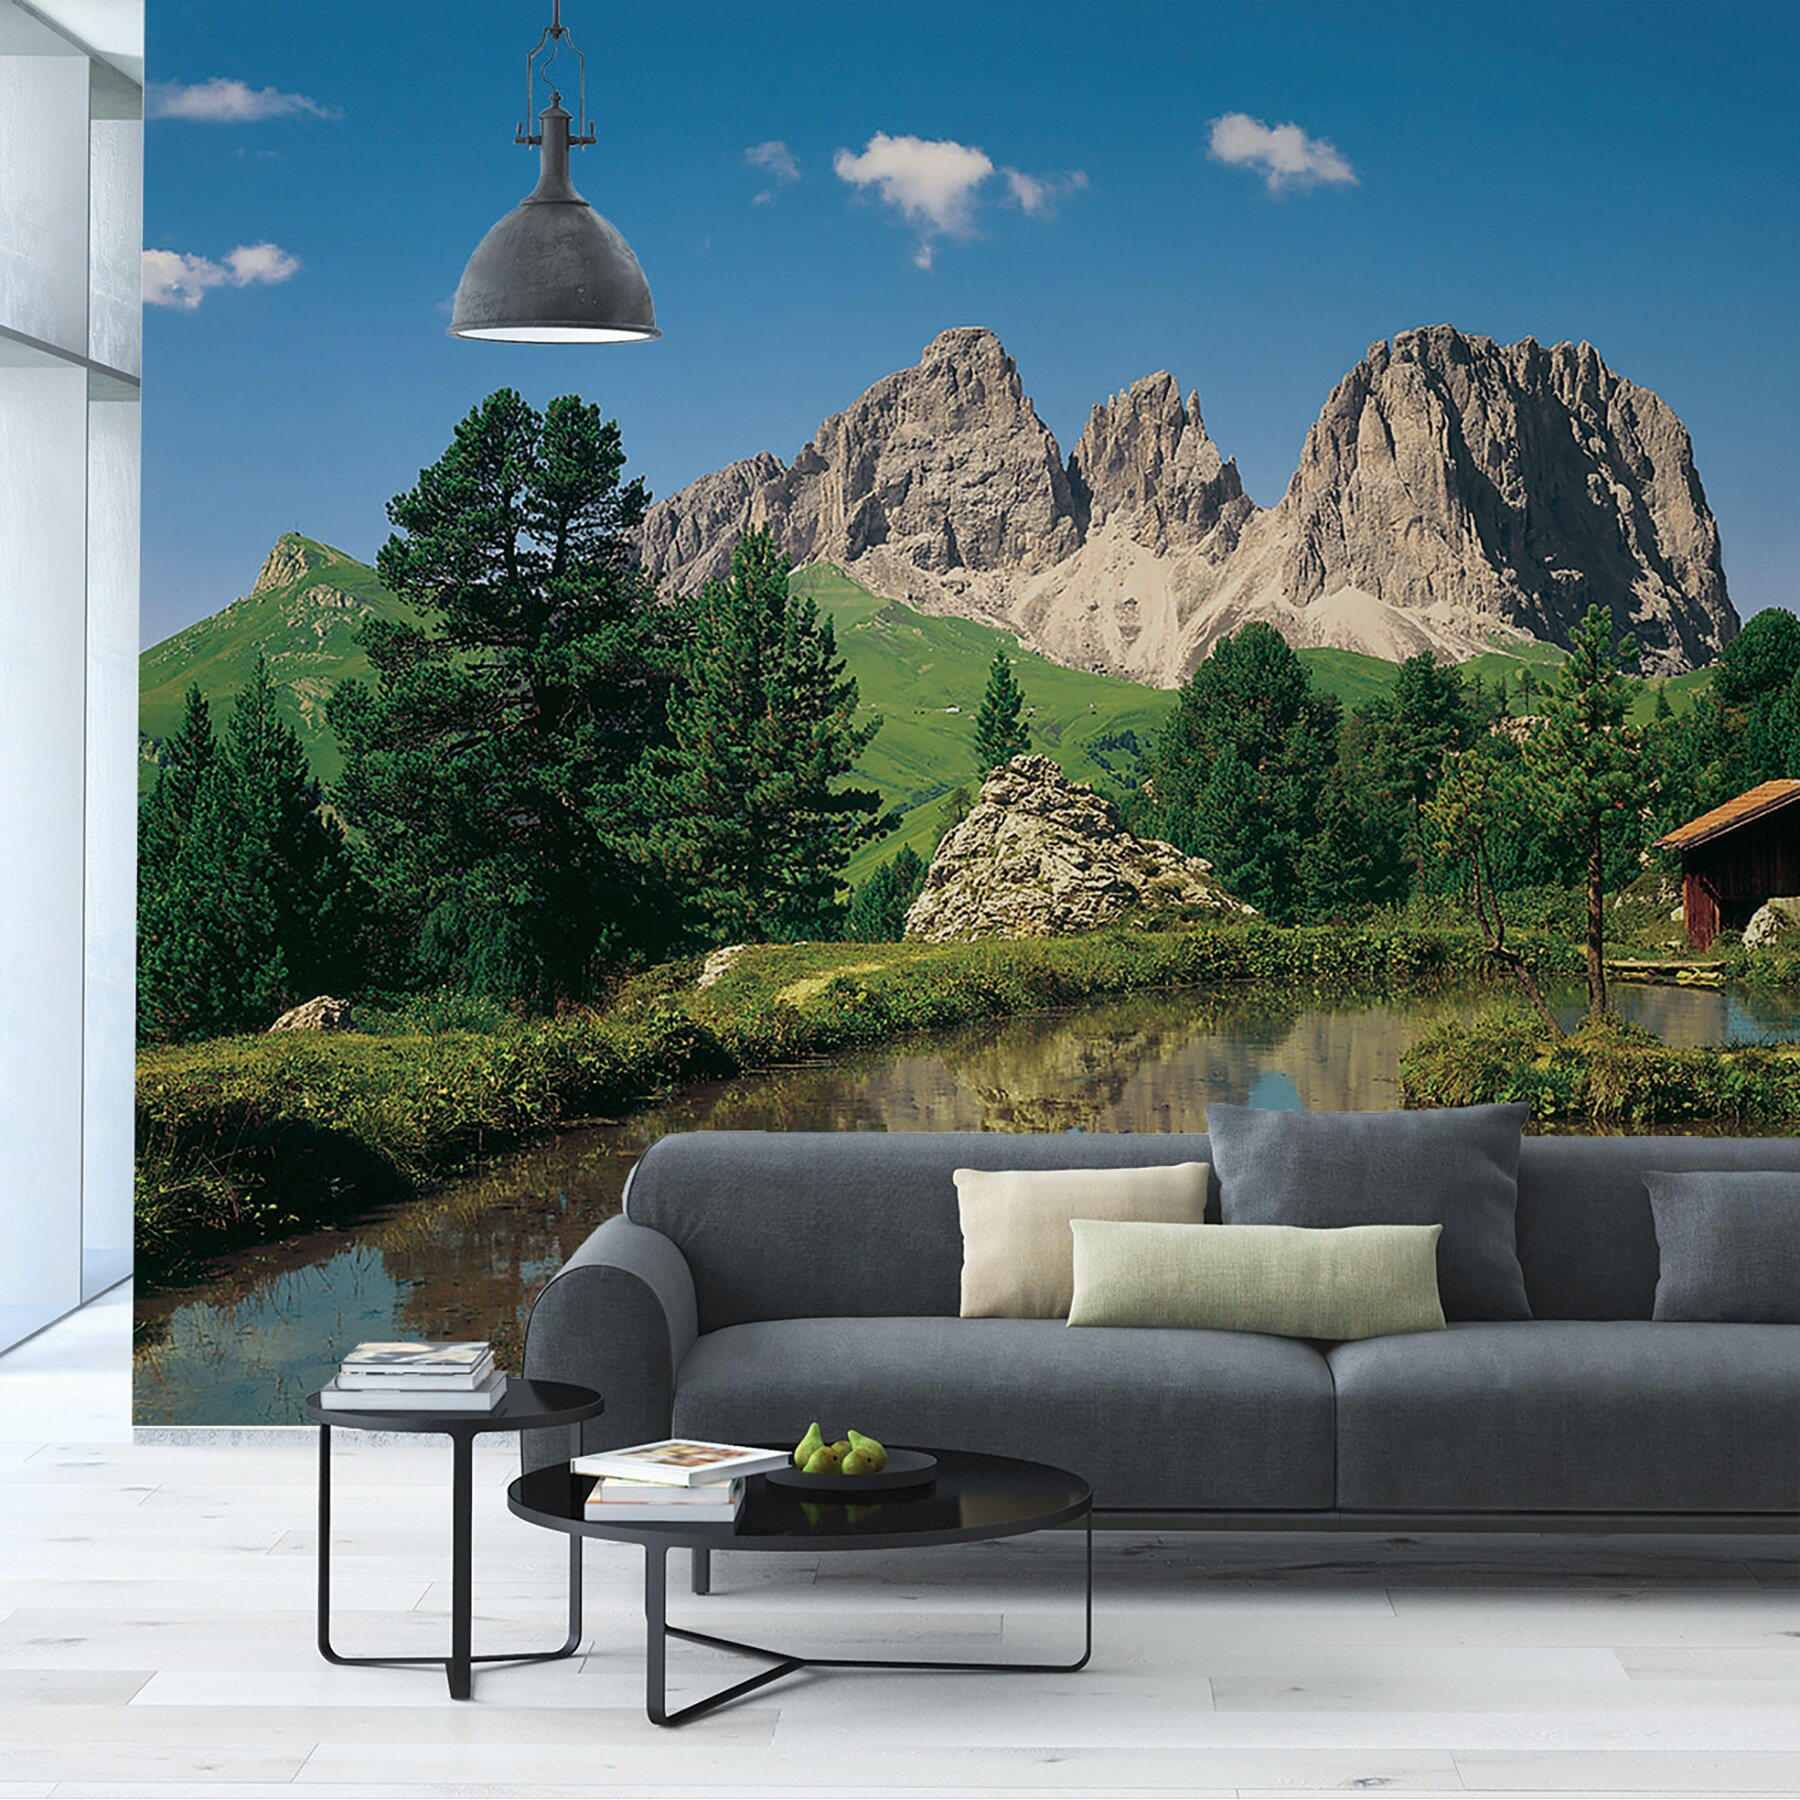 Komar dolomiten wall mural wayfair for Brewster wall mural